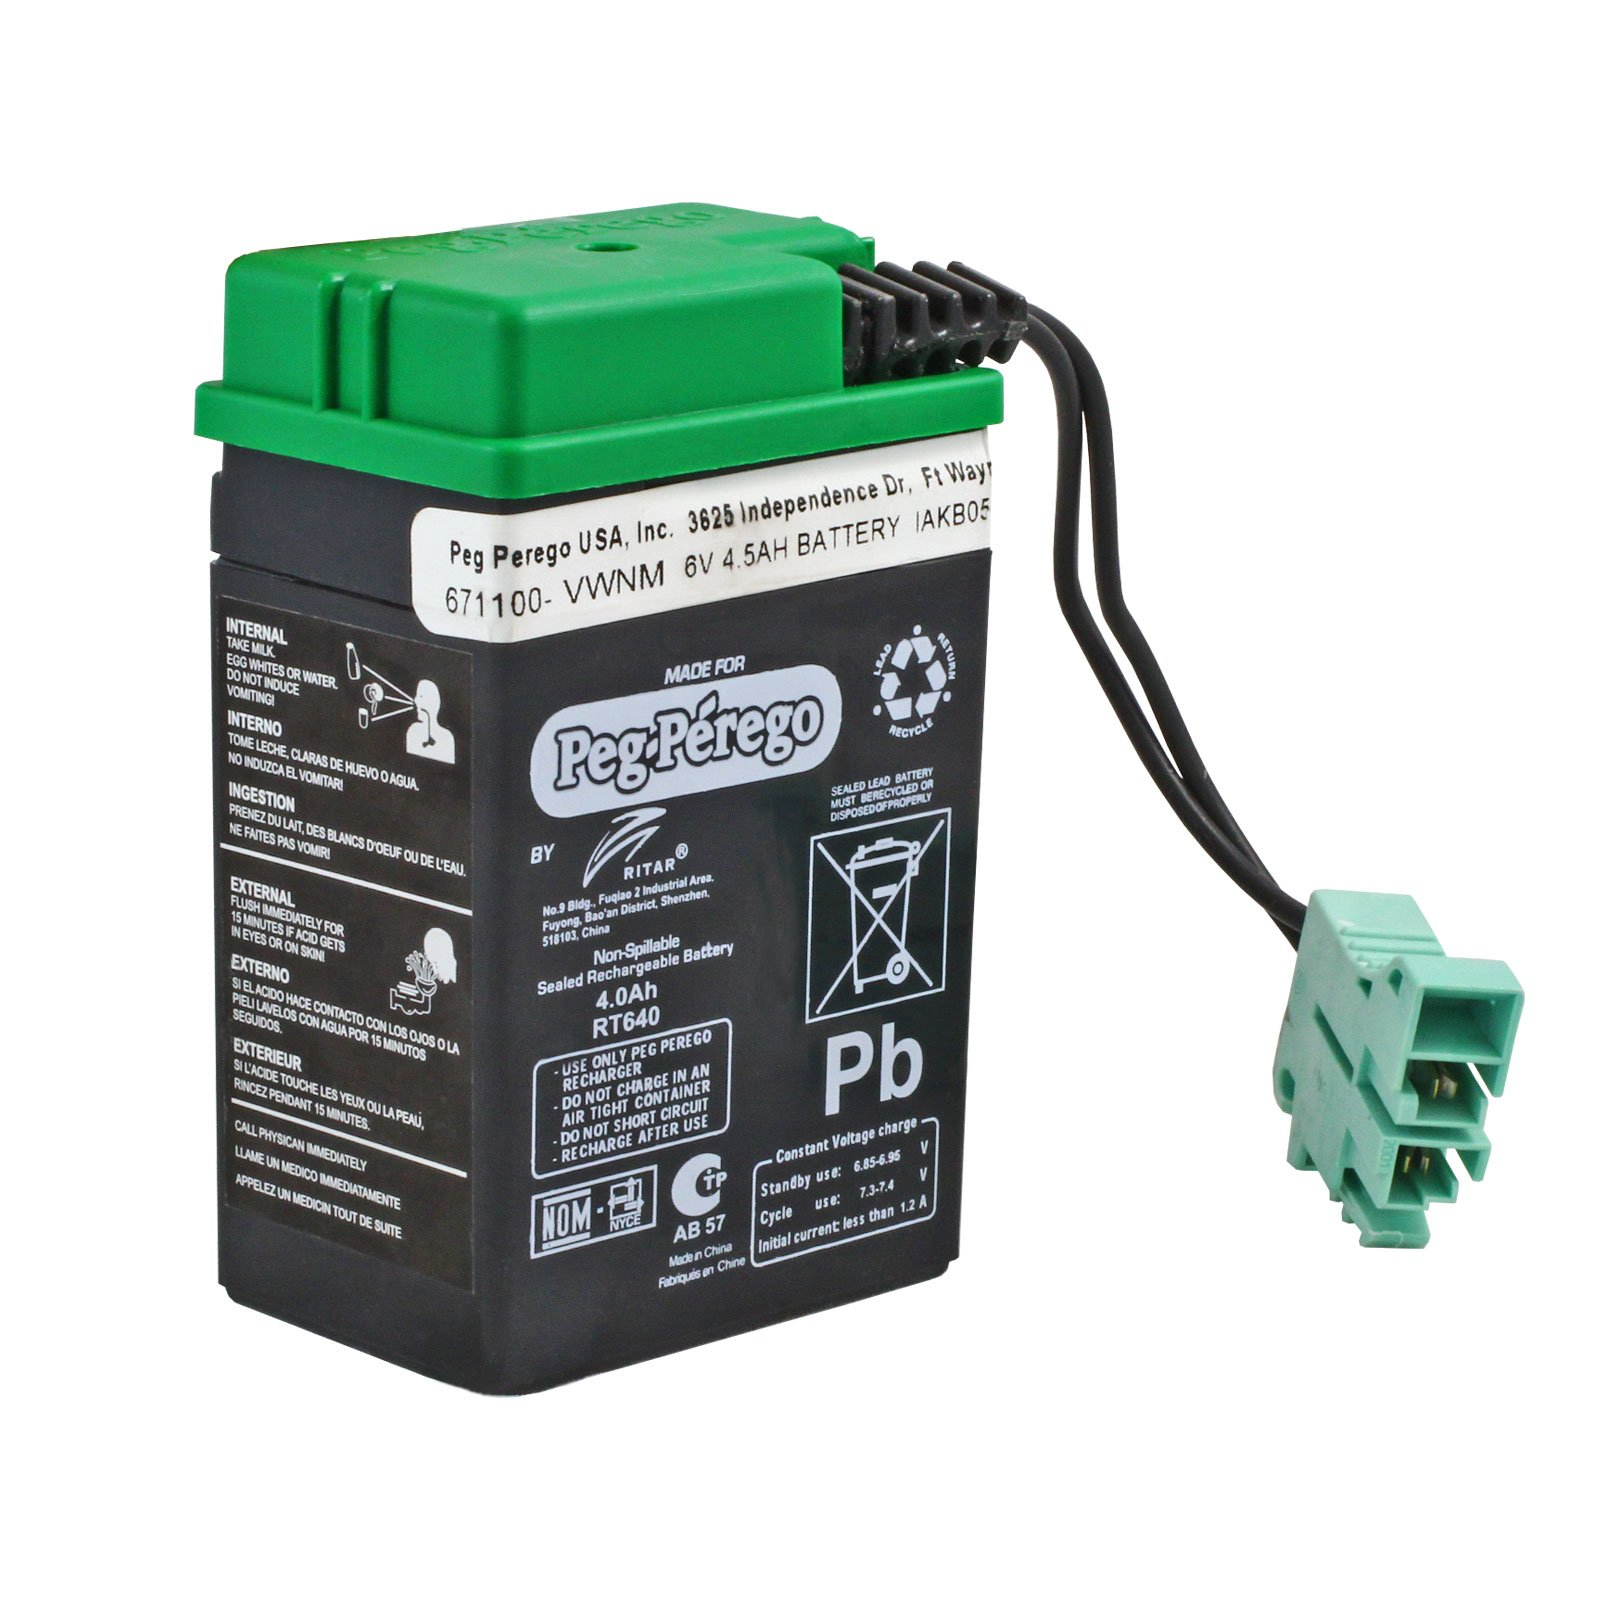 Replacement Peg Perego 6 Volt Green Battery for Peg Perego